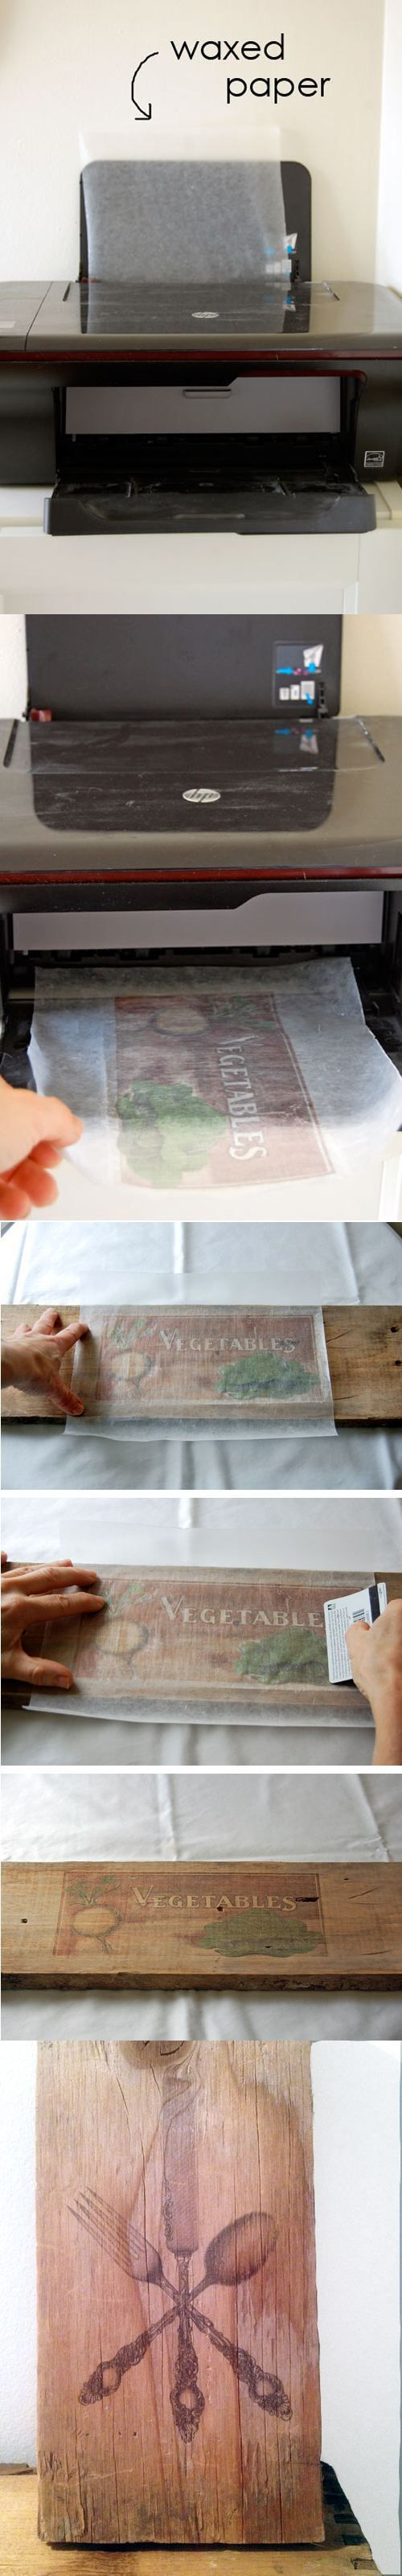 wax paper, printer and wood :)